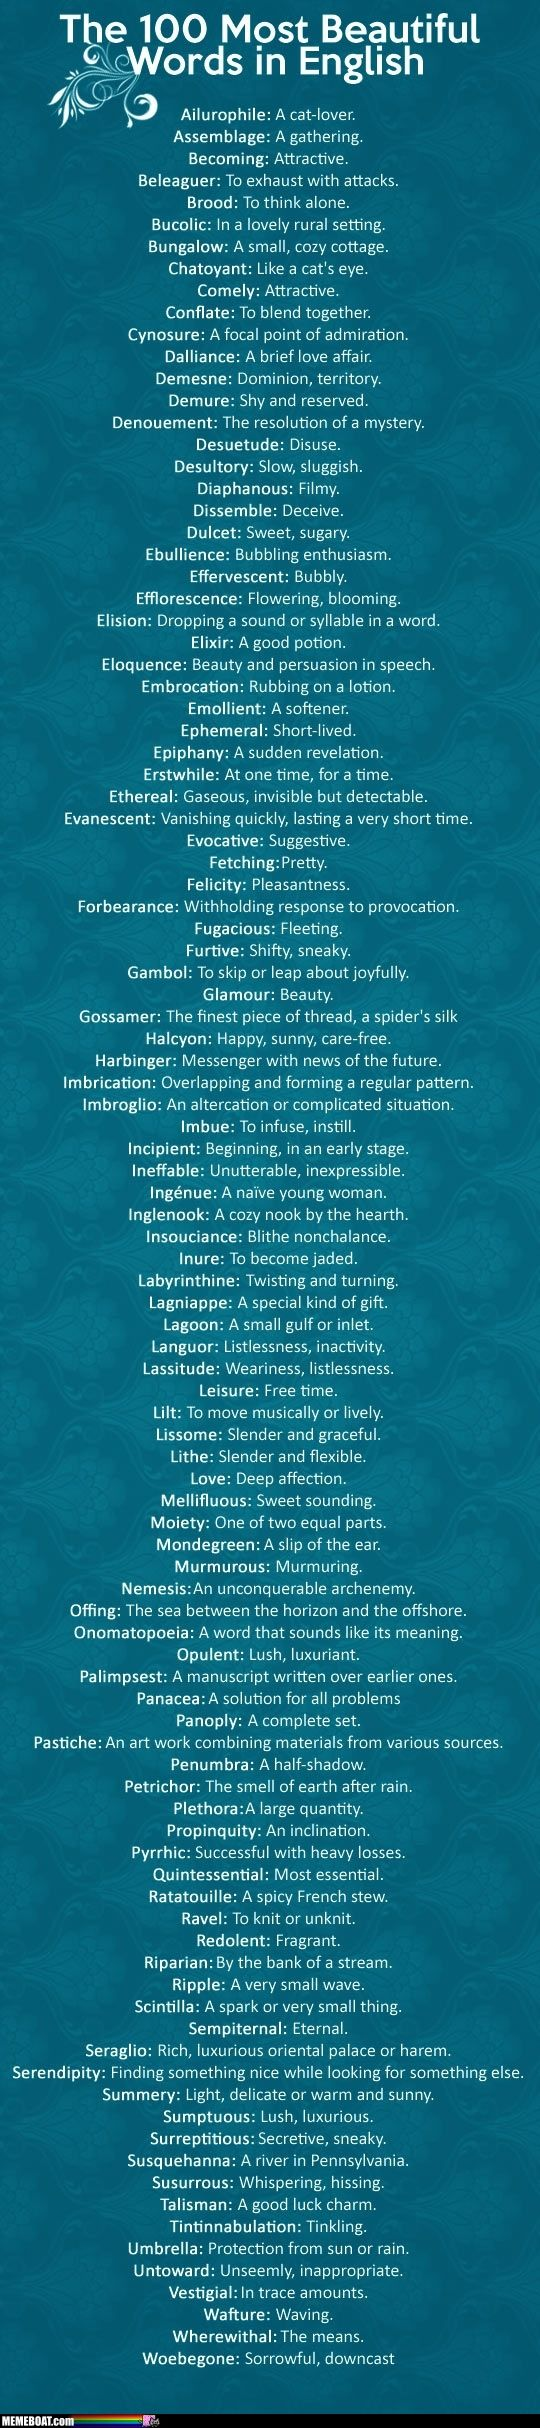 The 100 most beautiful words in English.   Should have left ailurophile off -- neither its sound, nor meaning have anything special to offer.